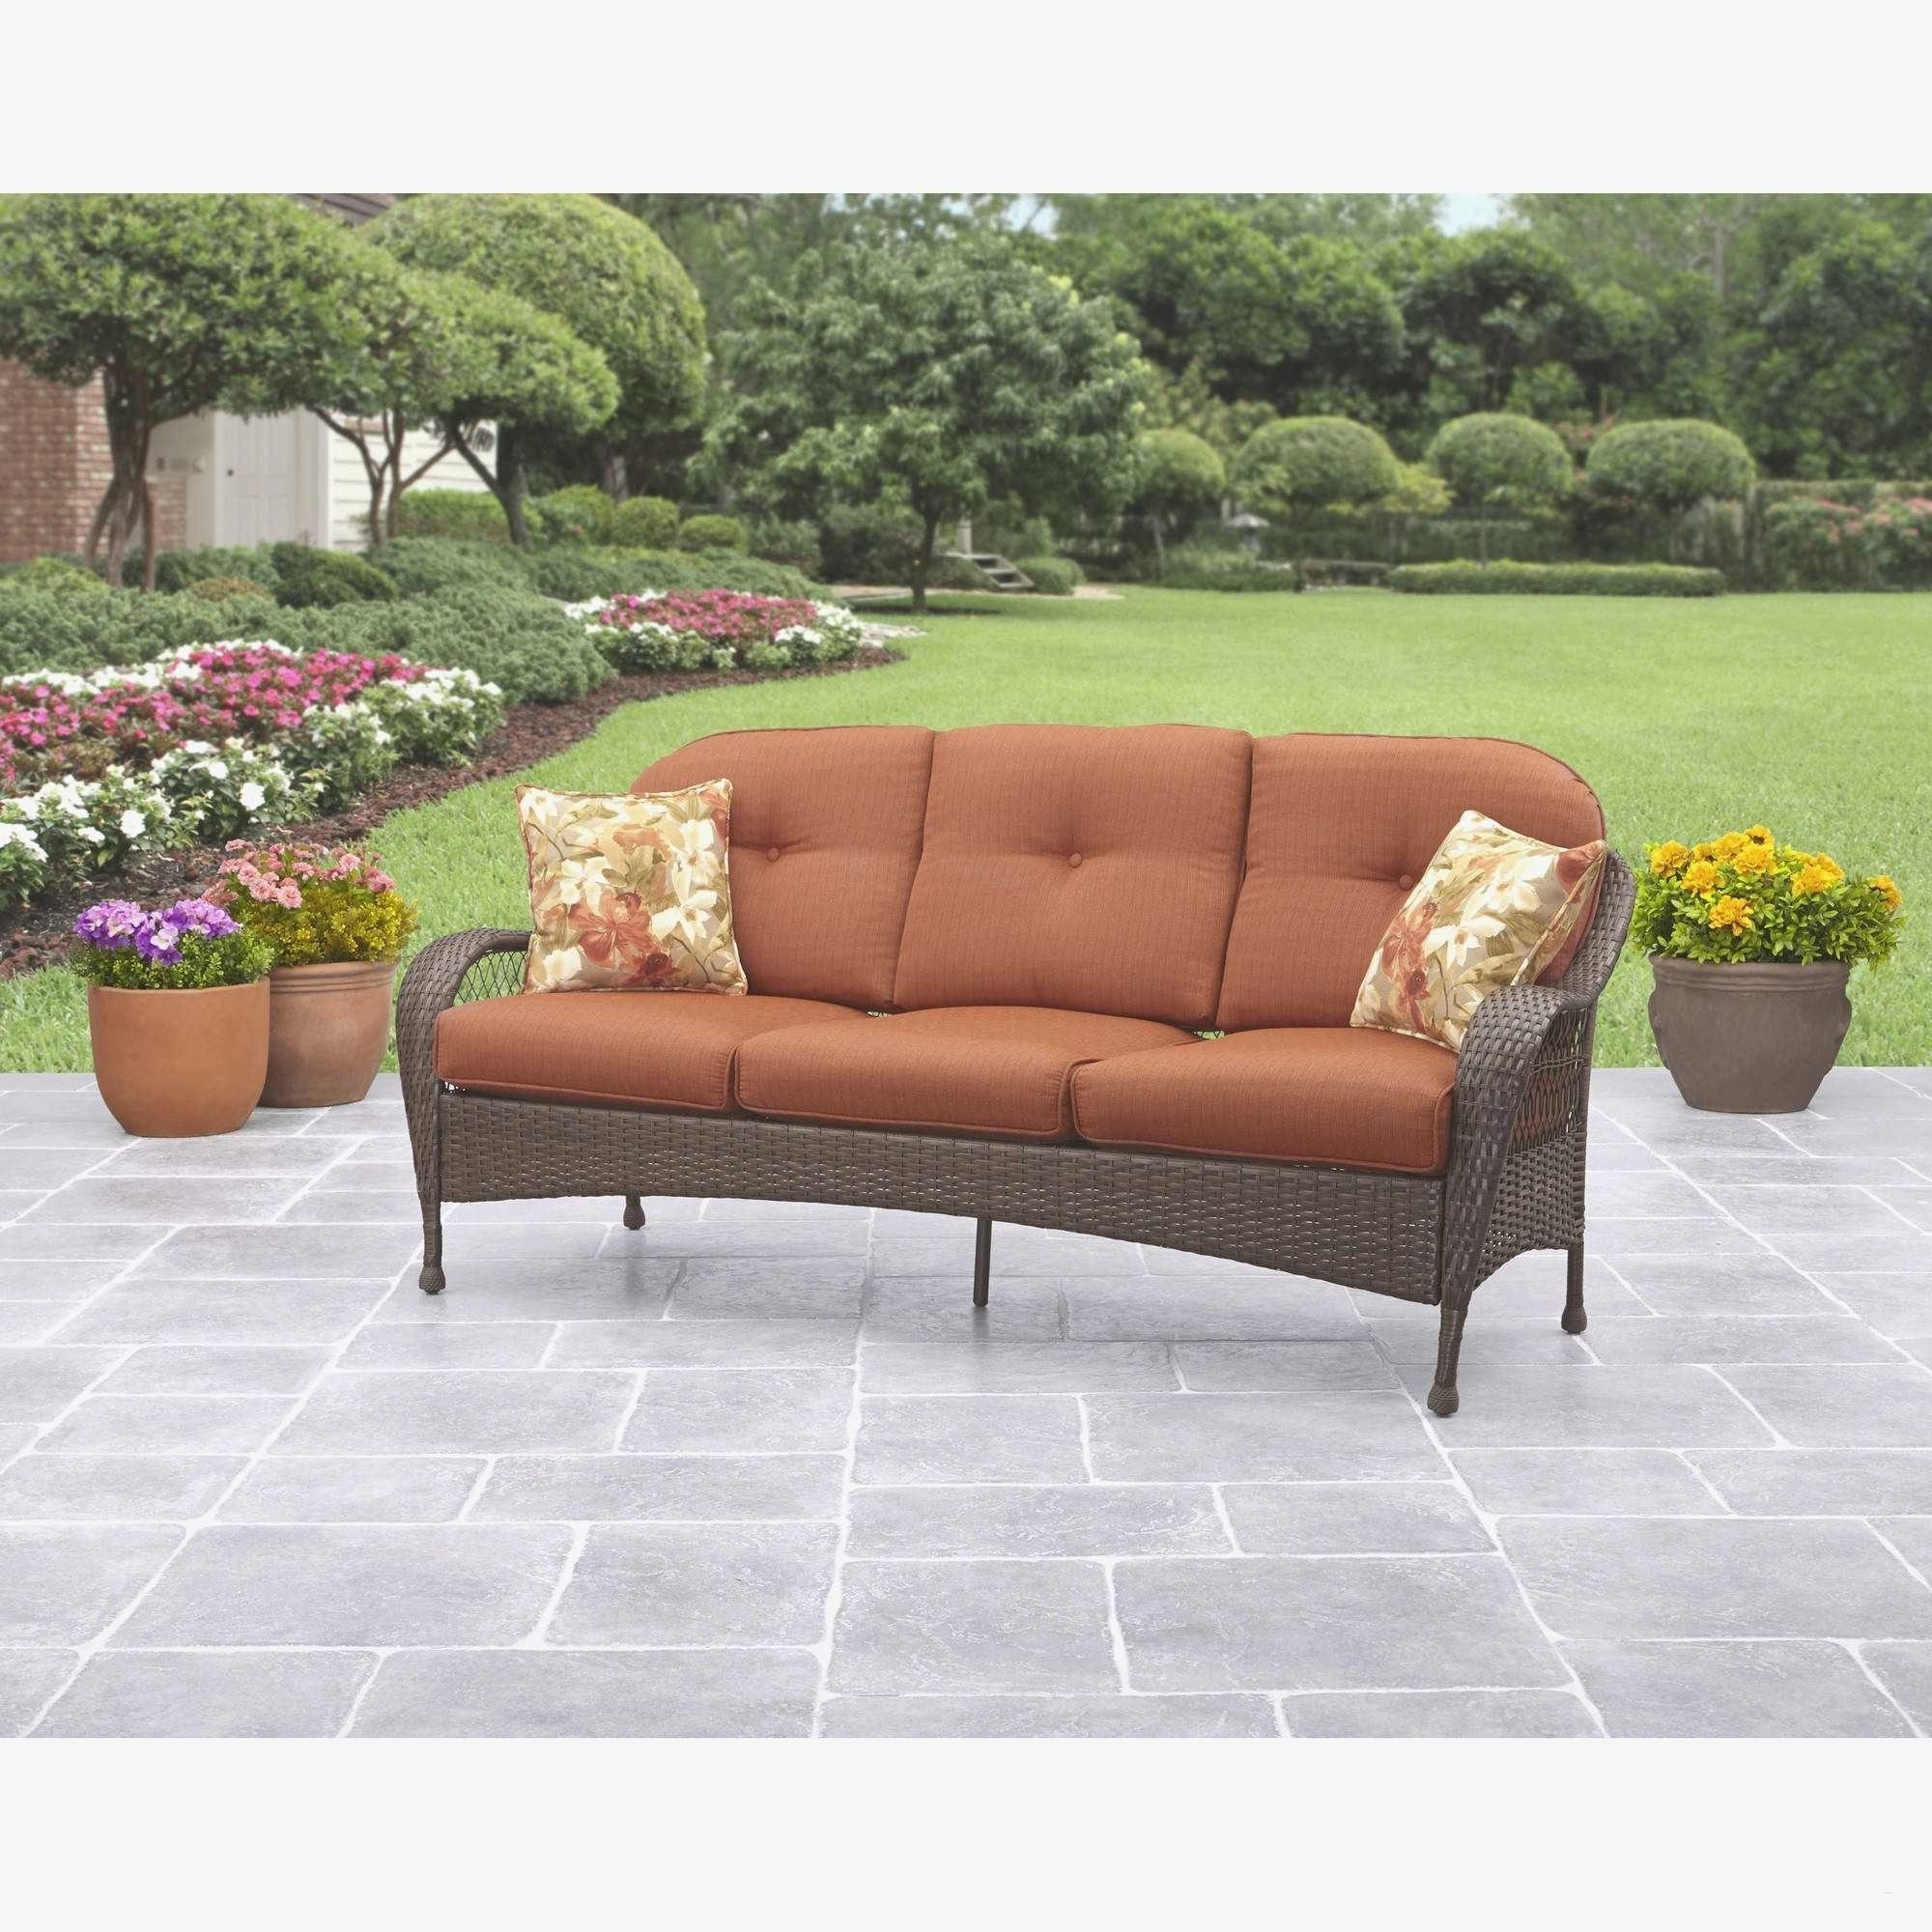 Walmart Patio Furniture Conversation Sets Intended For Well Known Patio Tables At Walmart Gorgeous Better Homes And Gardens Azalea (View 17 of 20)